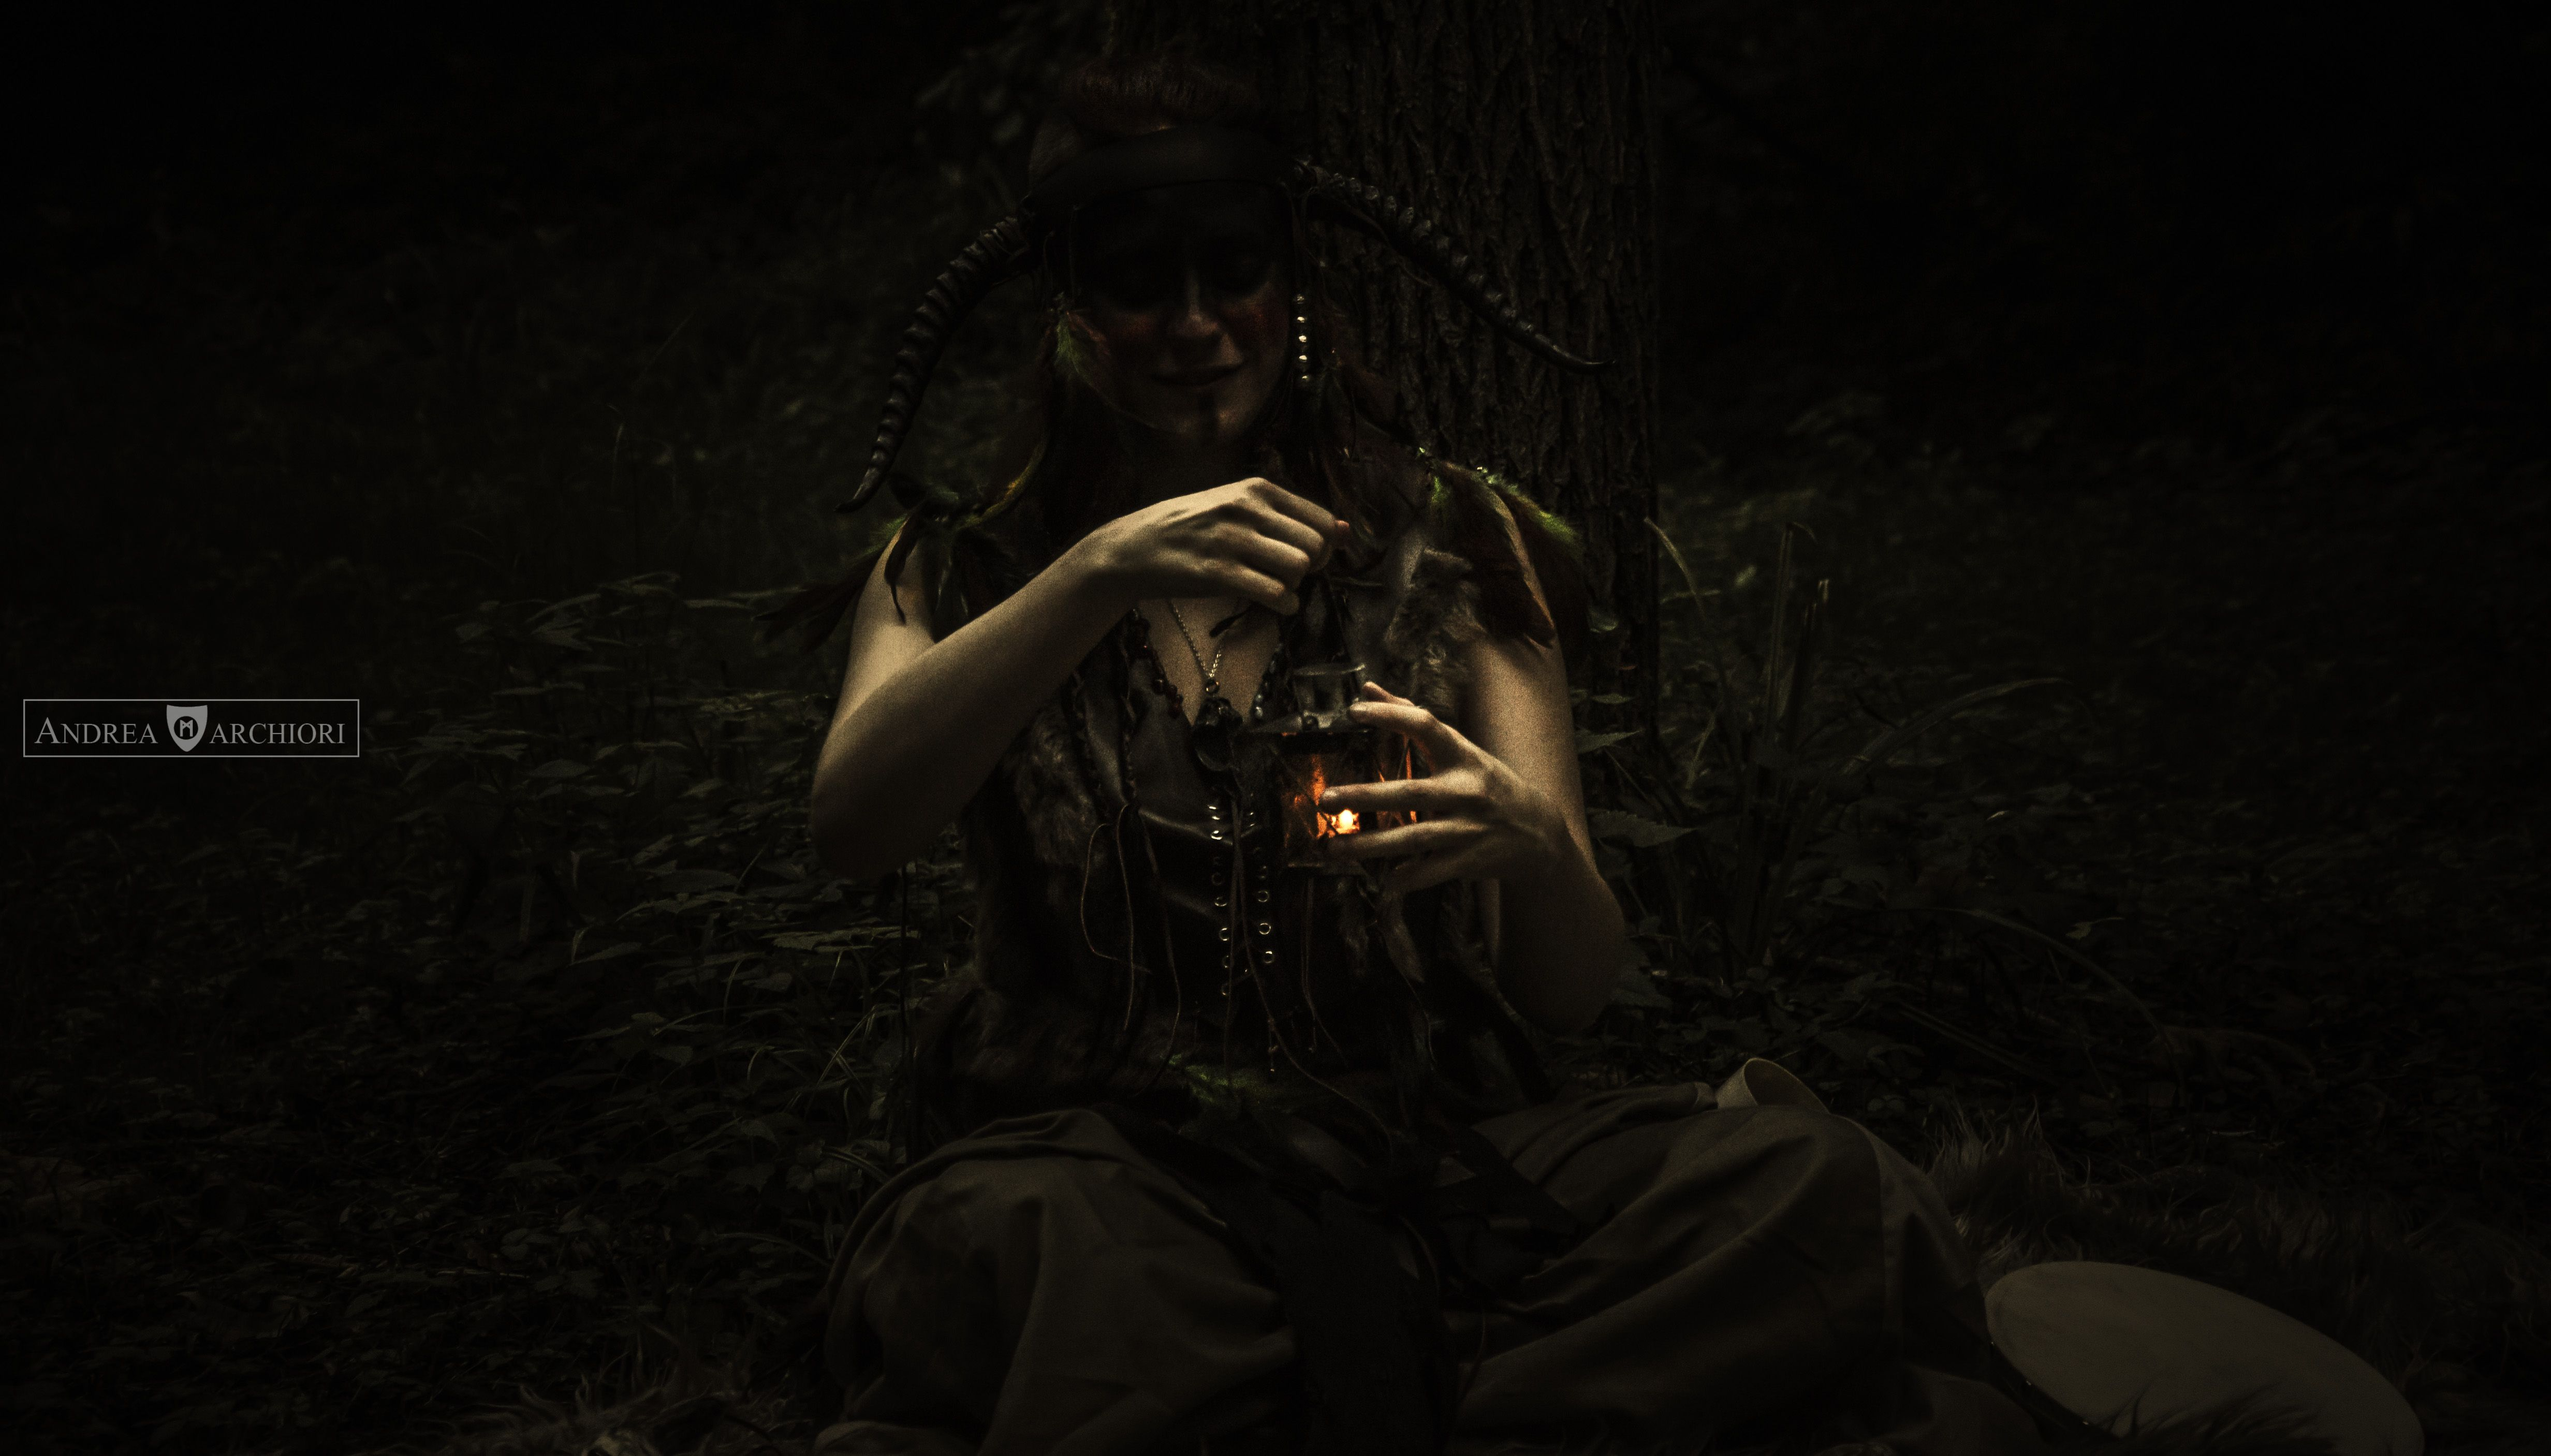 """""""The Ritual""""  First photo of the photoset taken this weekend with my shaman costume in the wood!  A big thank to the Photographer Andrea Marchiori (his facebook page here: https://www.facebook.com/Andreamarchioriphoto?fref=ts ) and all the assistants!  Other costumes here: https://www.facebook.com/thegoldenvalkyrie07?fref=ts  #costume #Shaman #photo #lantern #ritual #wood #spirits #darkness"""